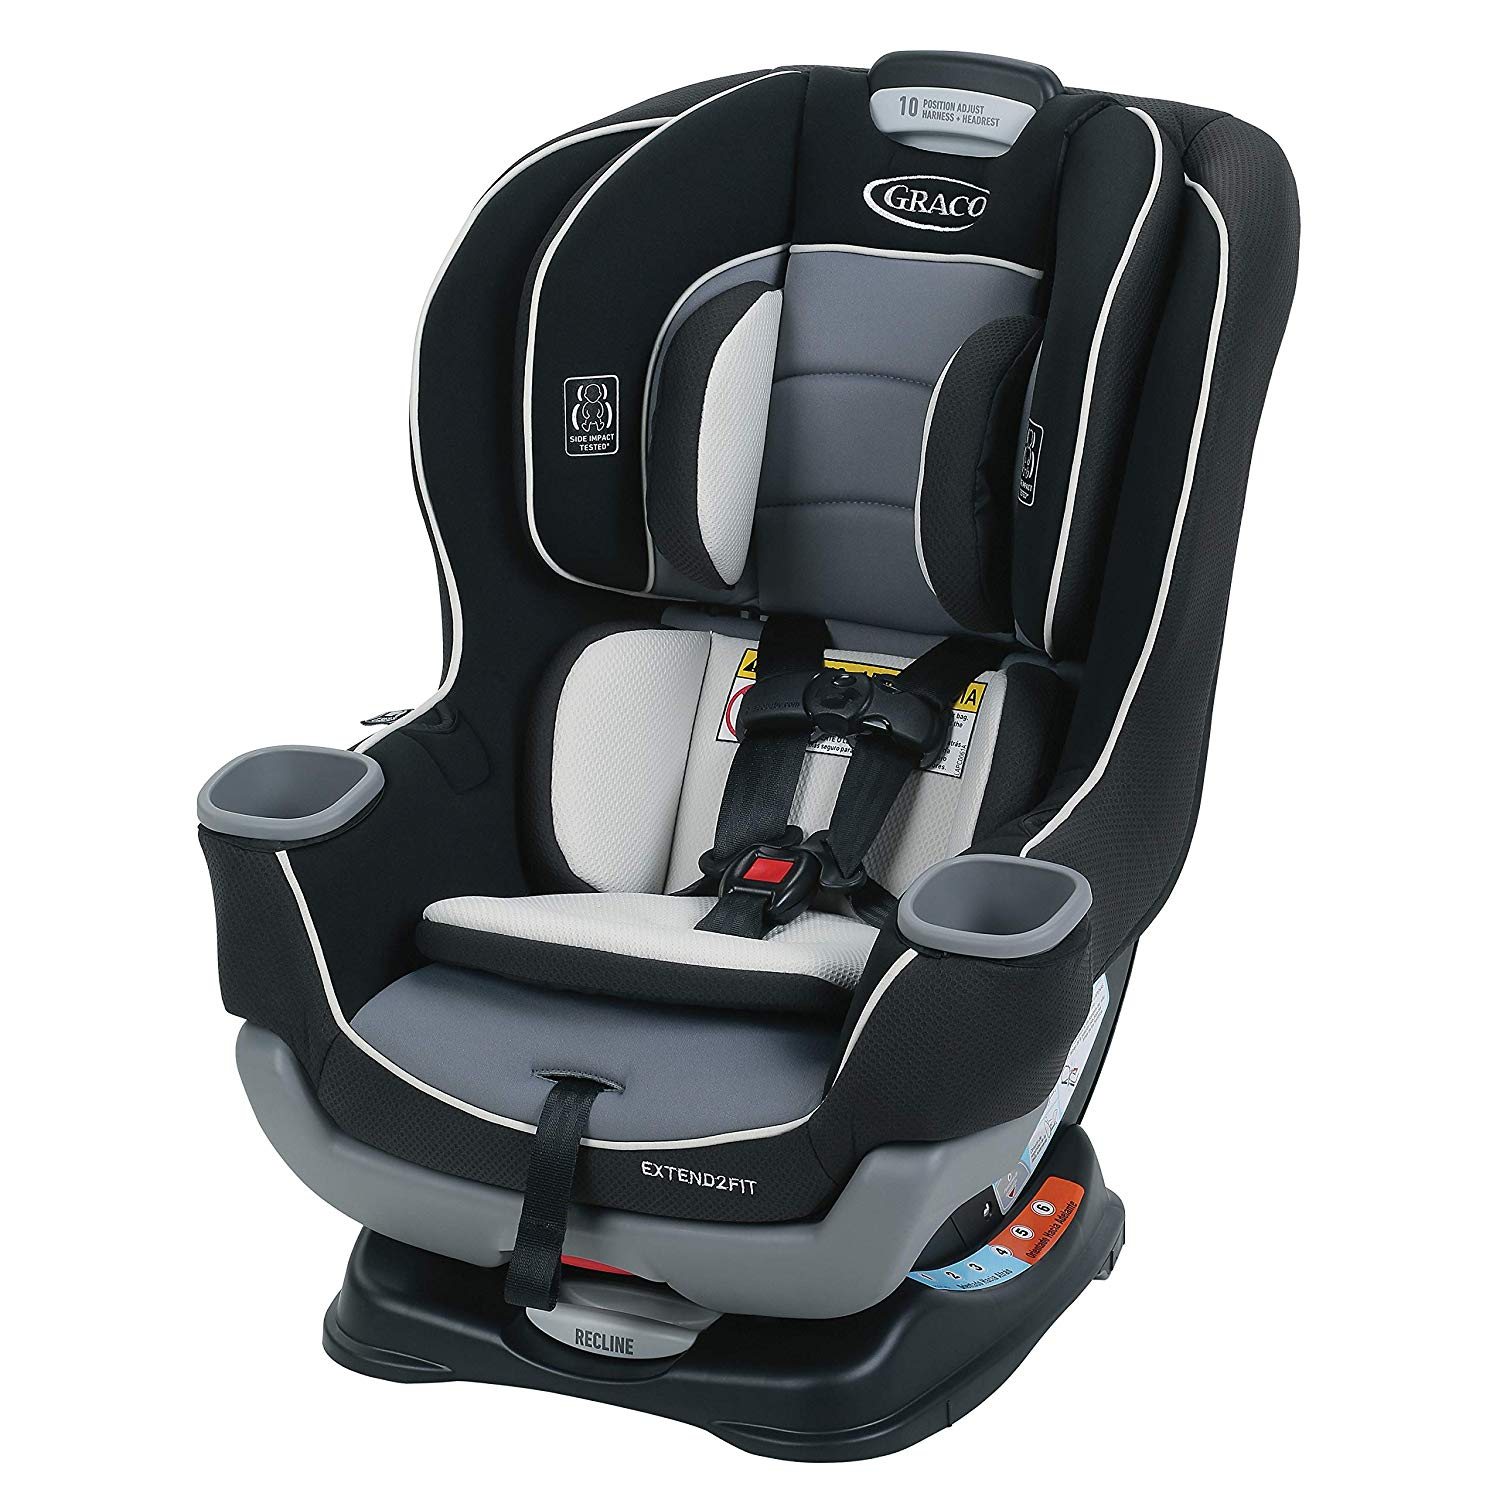 Graco Extend2Fit Convertible Best Infant Car Seat